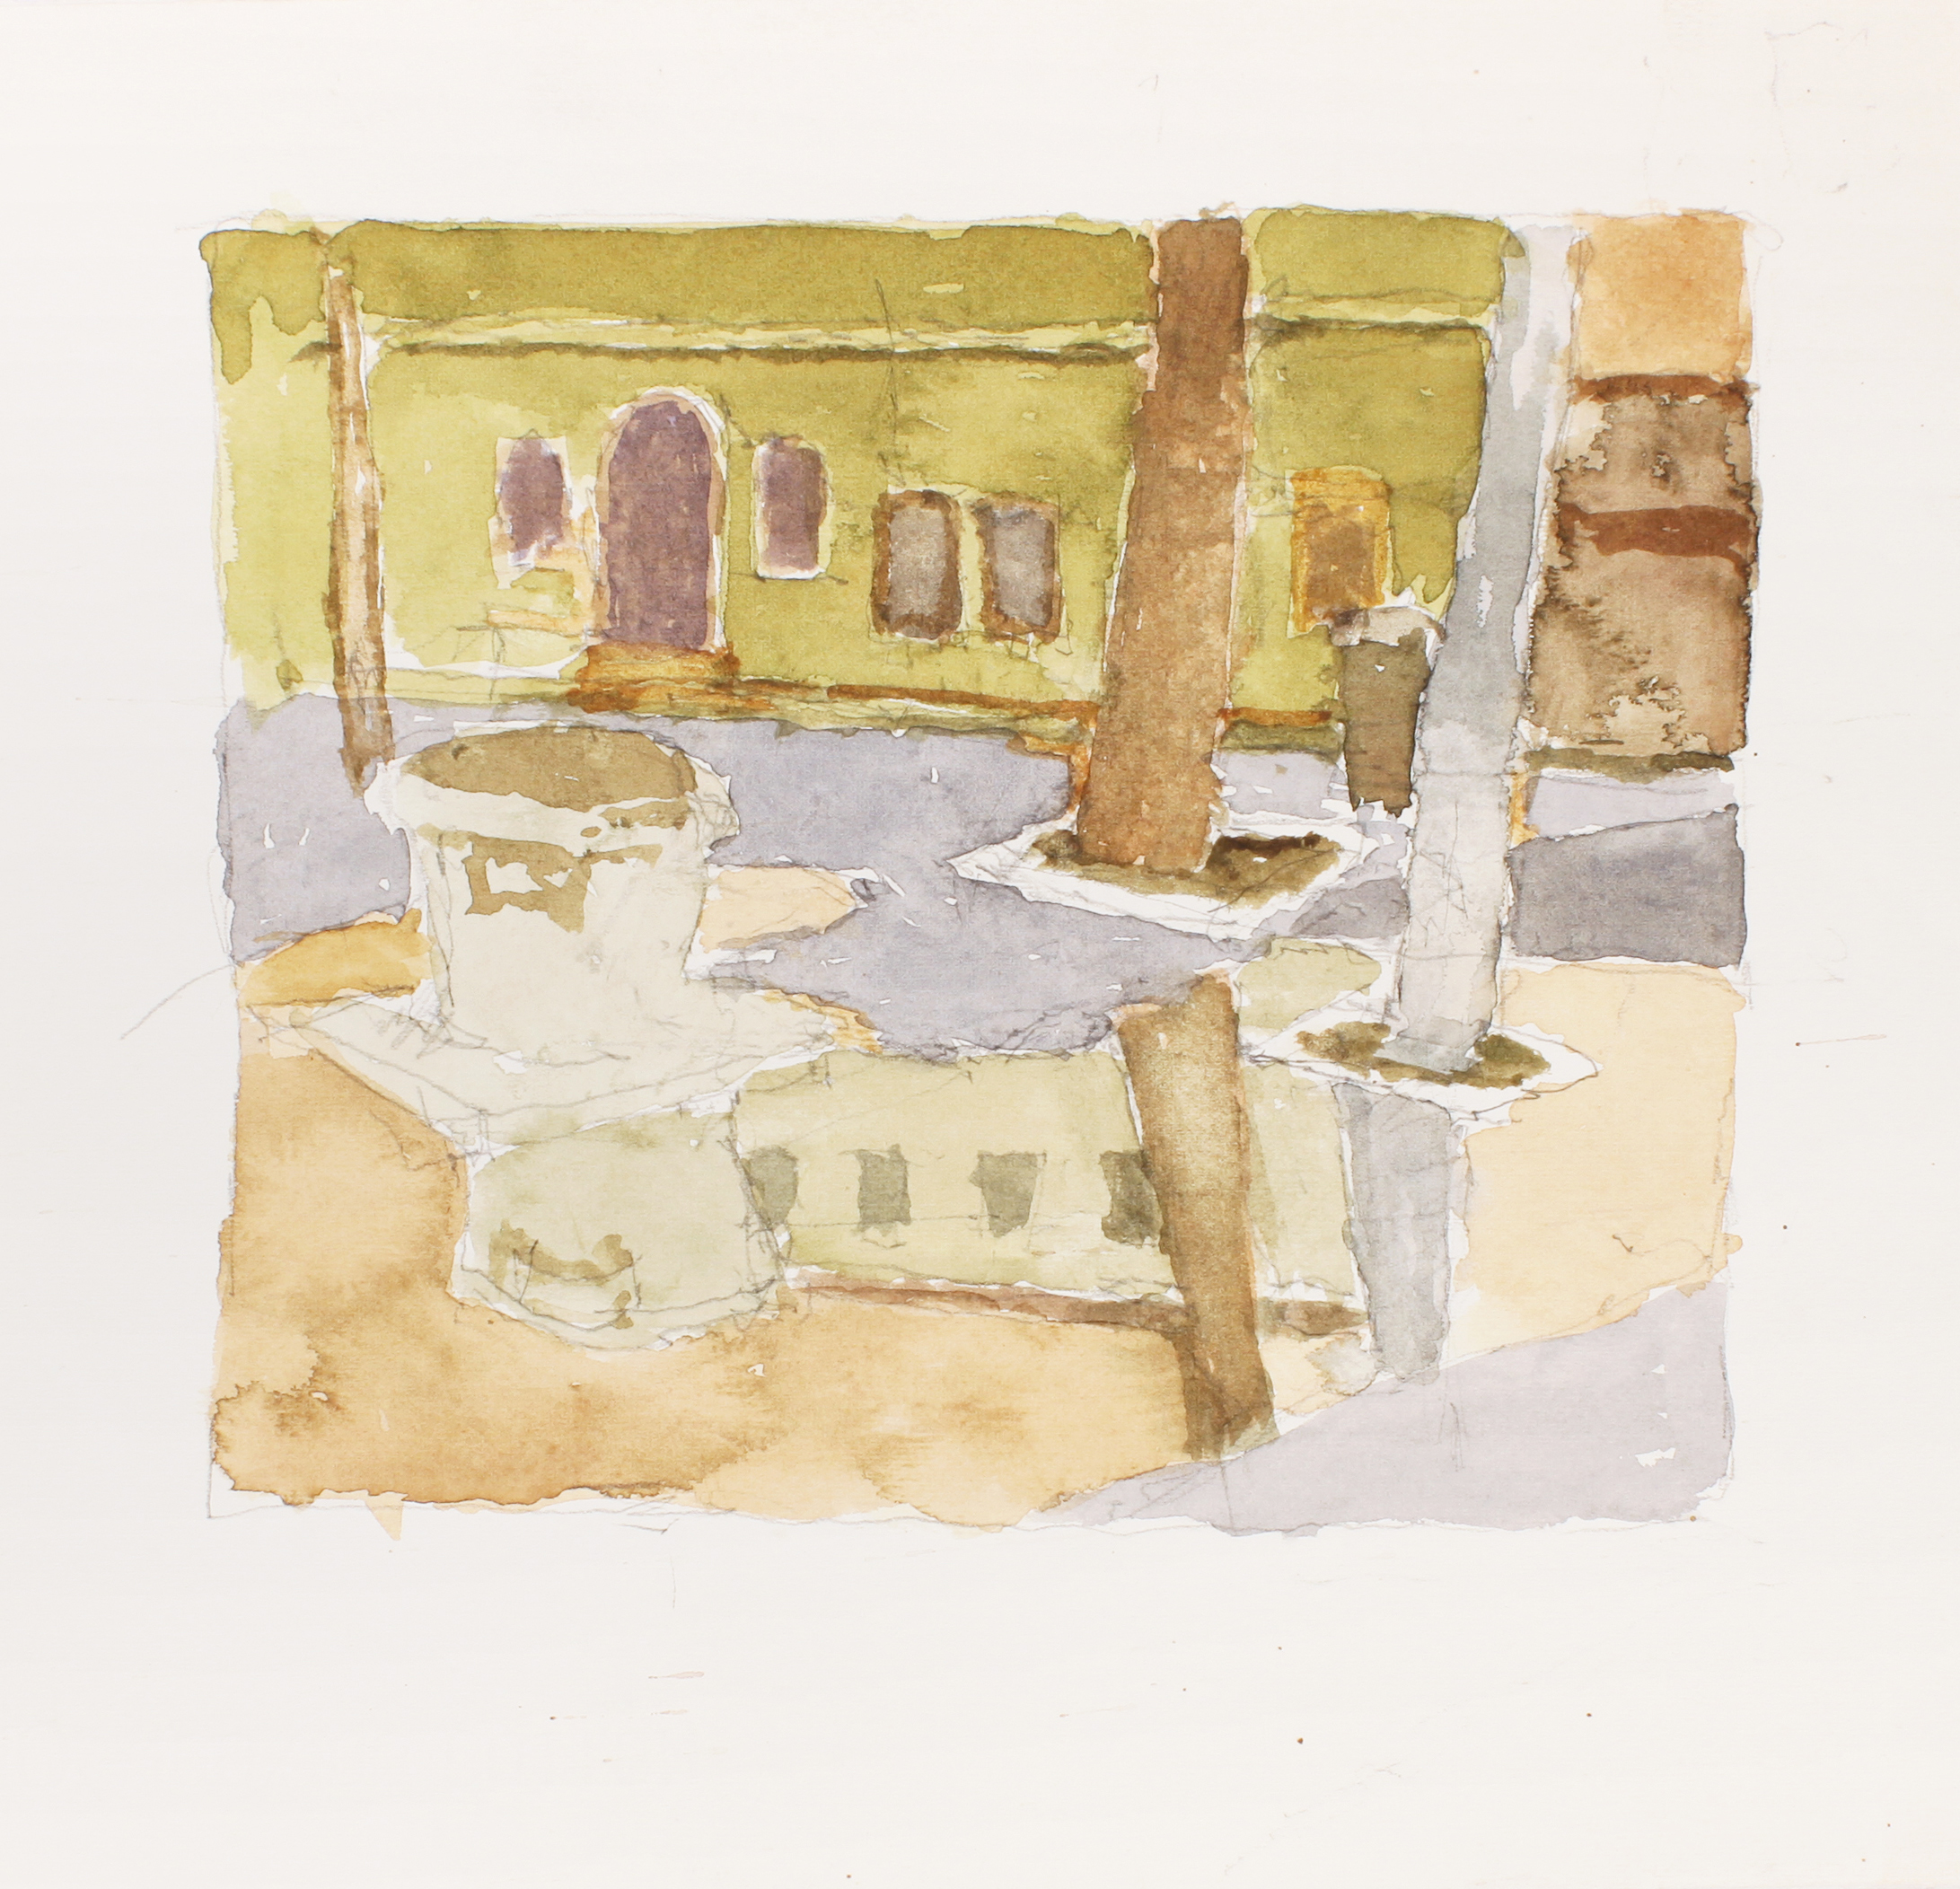 1990s_Campo_After_the_Rain_Sant_Alvise_Venice_watercolour_and_pencil_on_paper_11x12in_WPF332.jpg